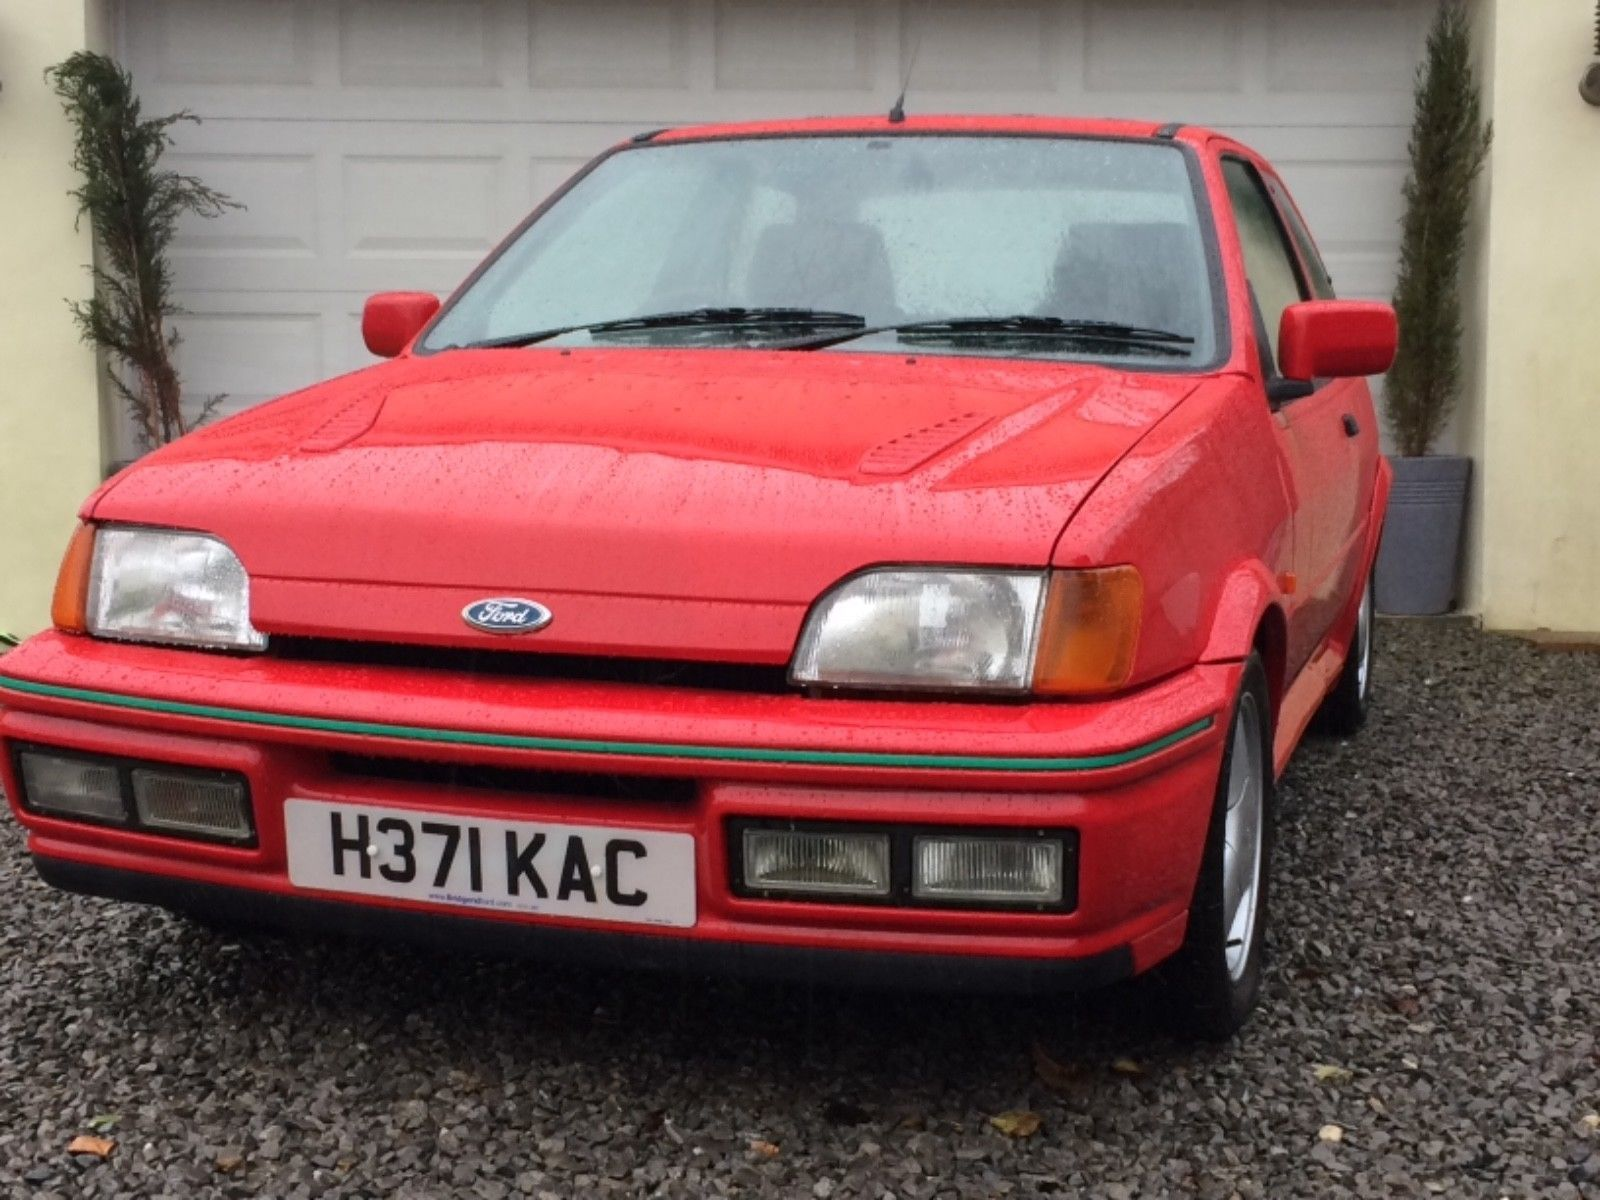 1990 Ford Fiesta Rs Turbo Mk3 Ford Fiesta Turbo Car Ford